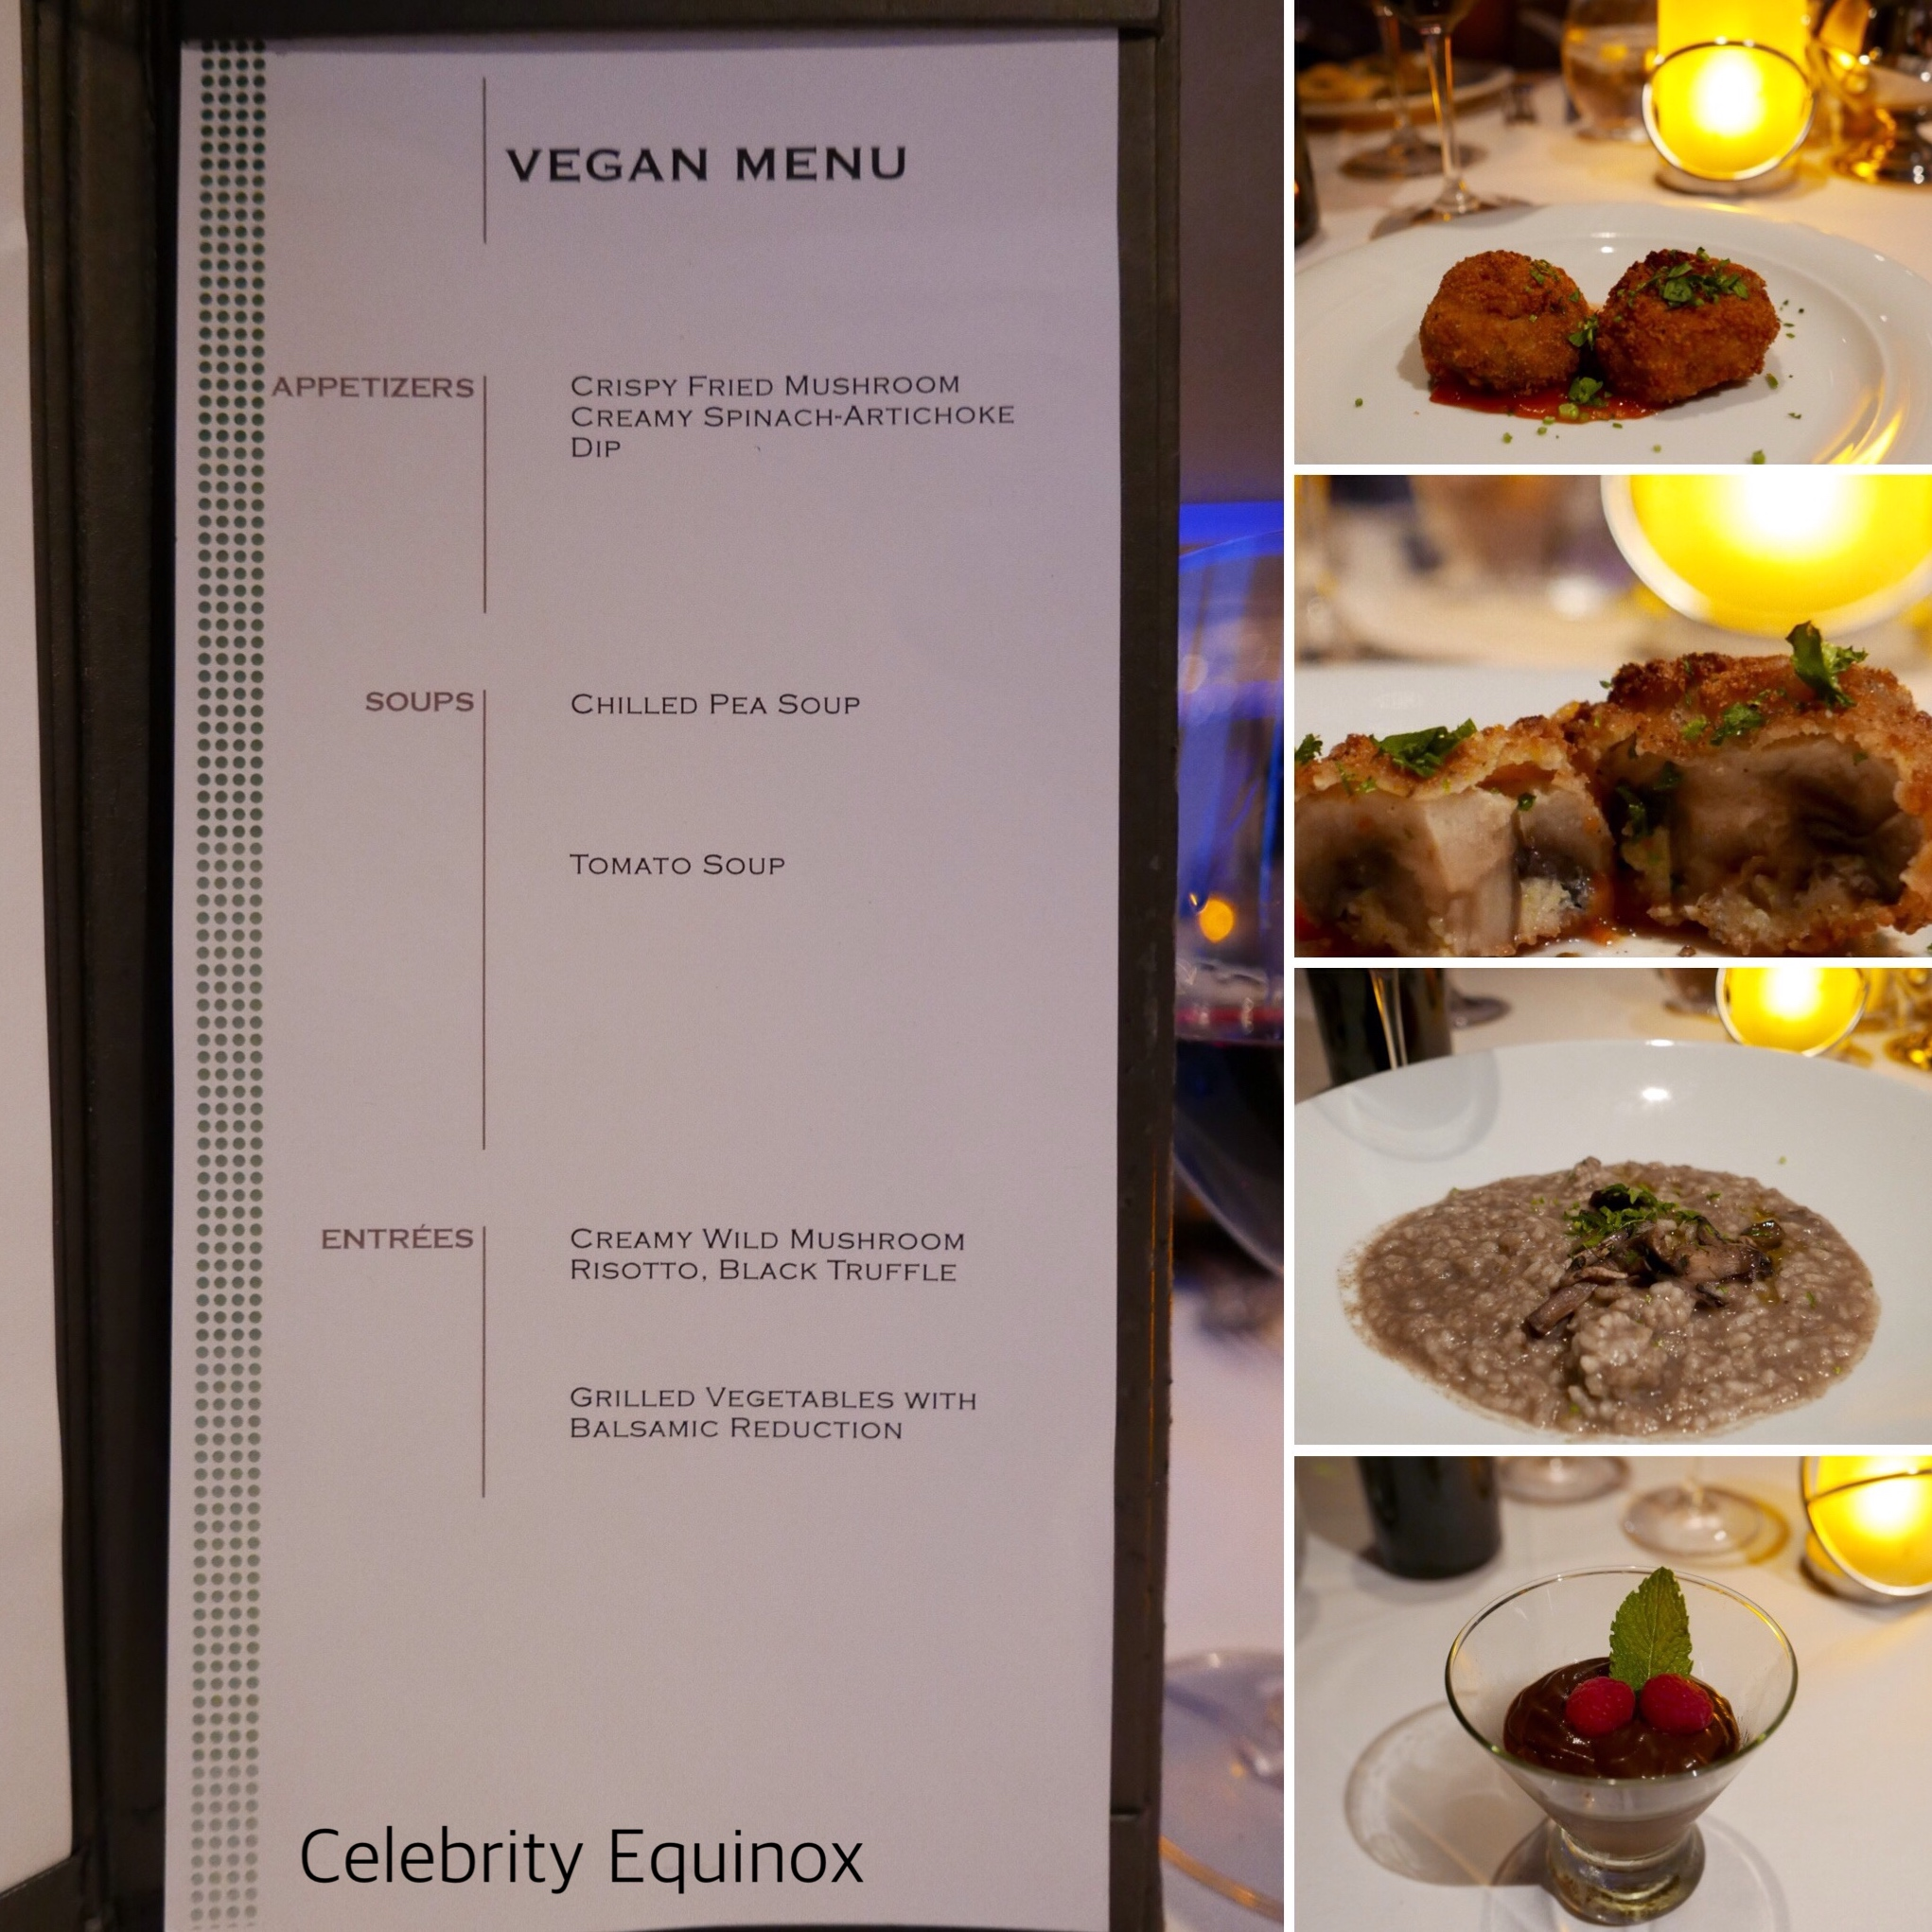 Celebrity Equinox vegan